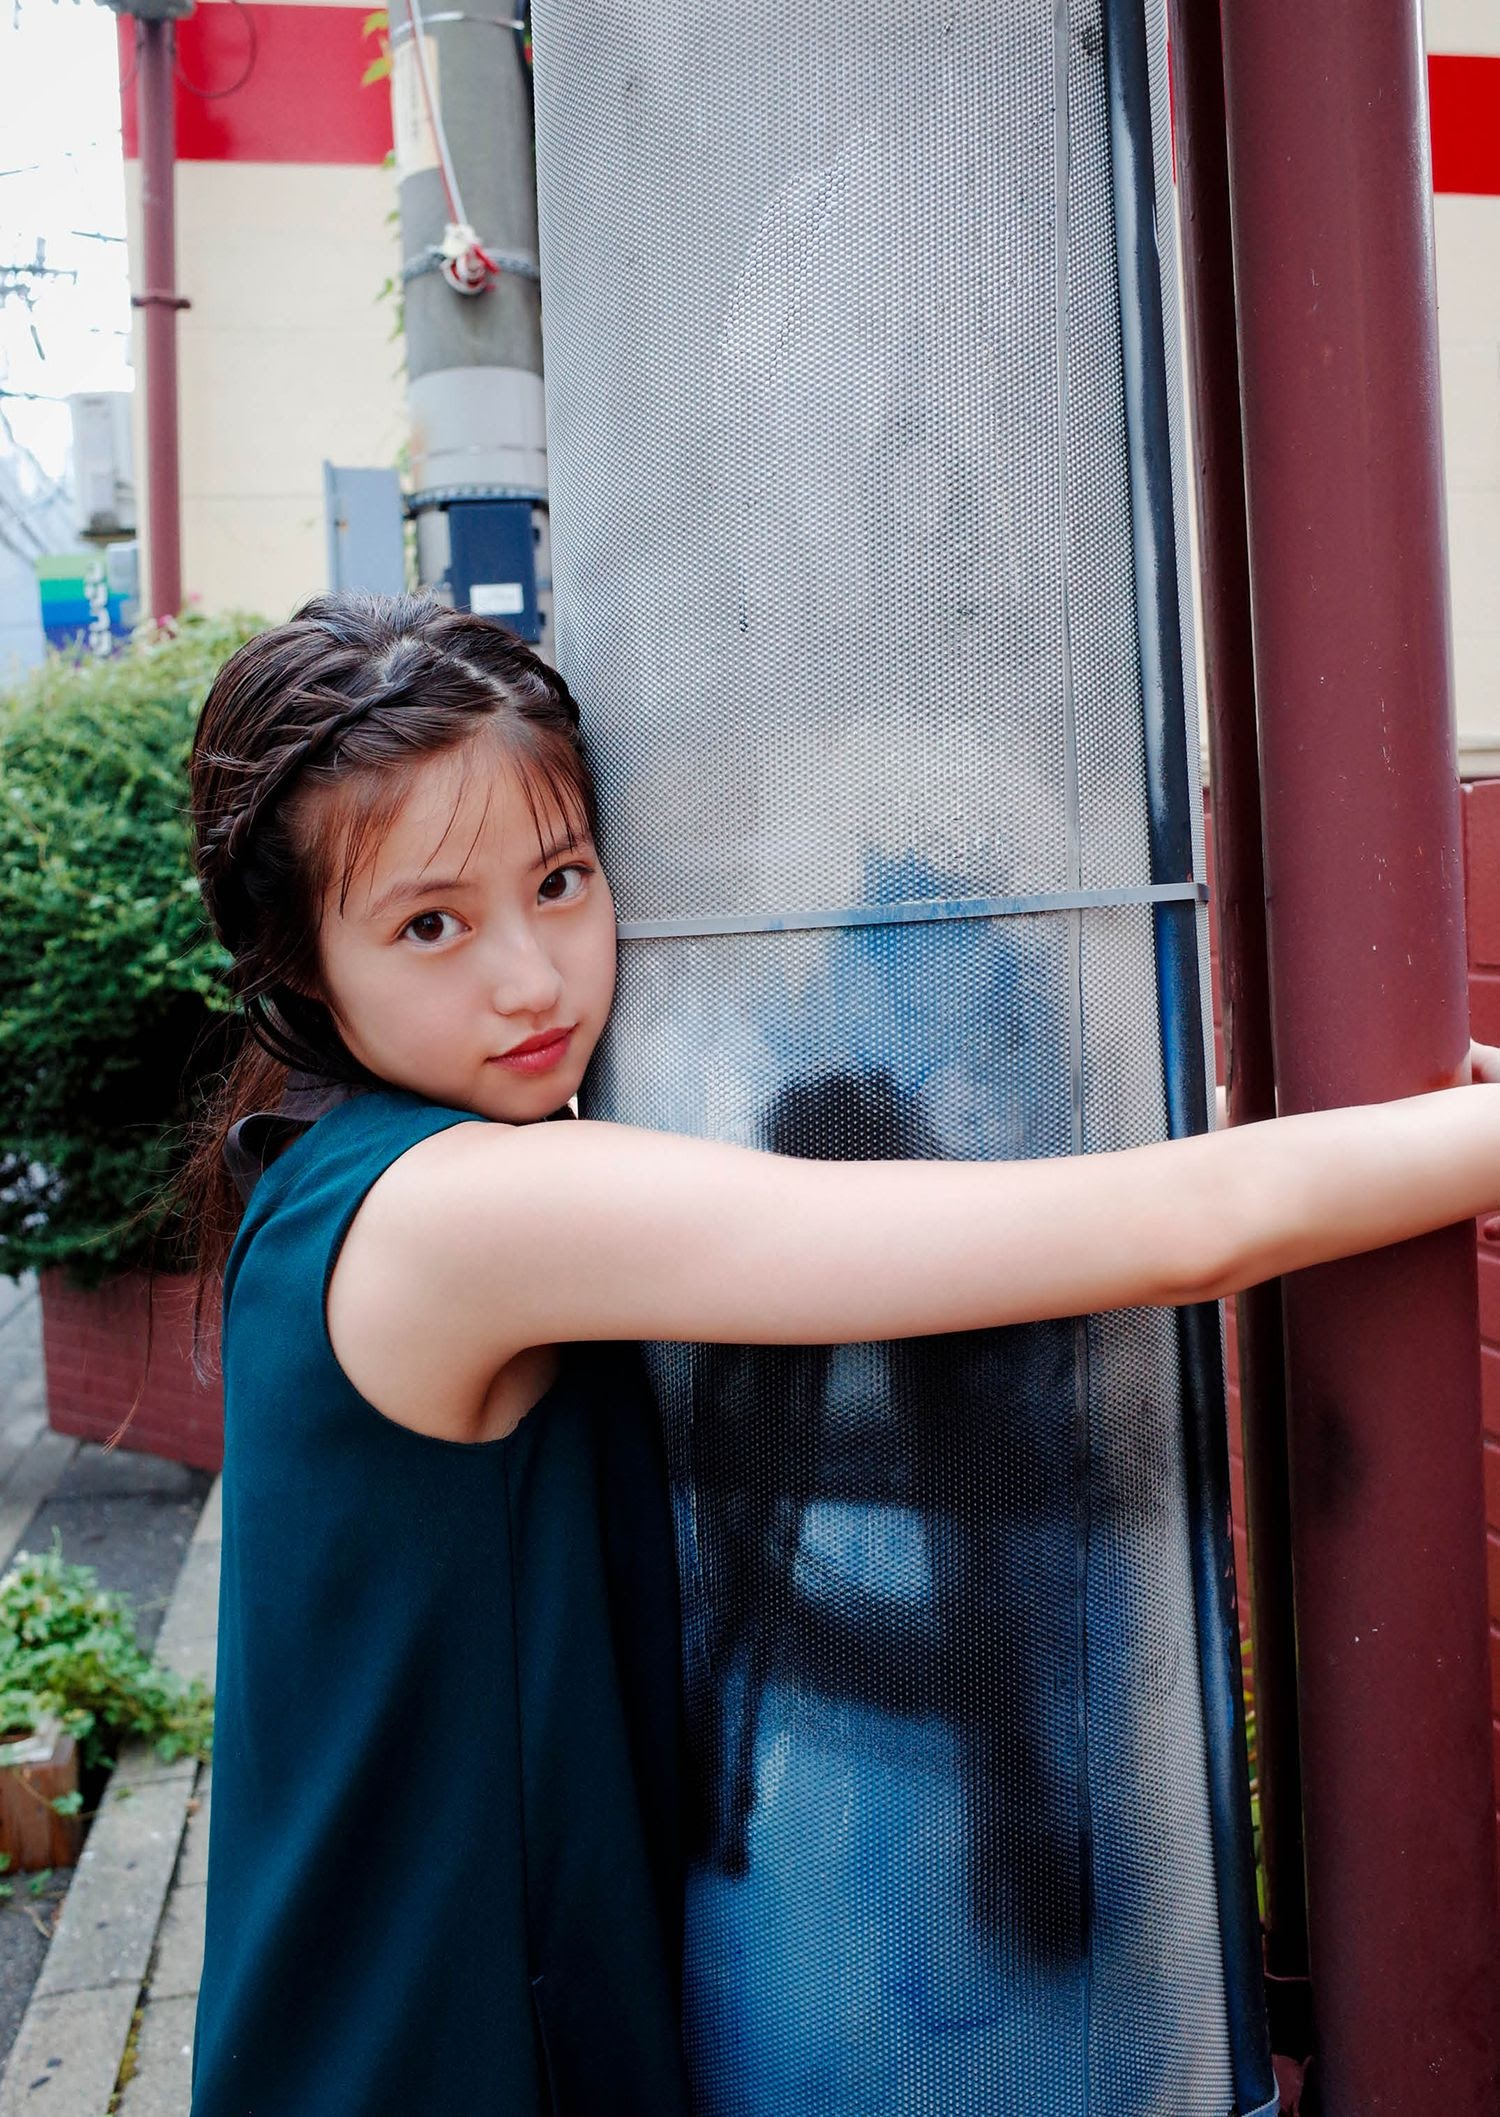 Without a doubt the youngest actress Mio Imada024